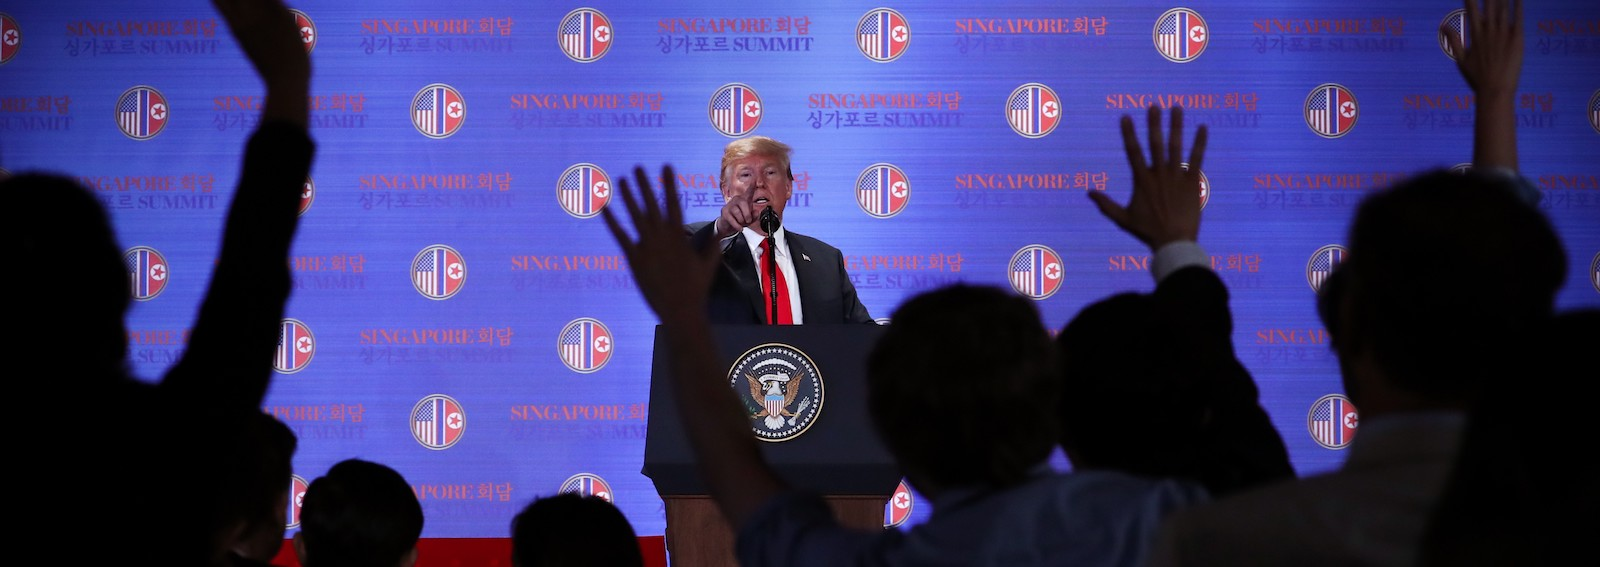 US President Donald Trump speaks to the press after the Singapore summit (Photo: Anadolu Agency/Getty)